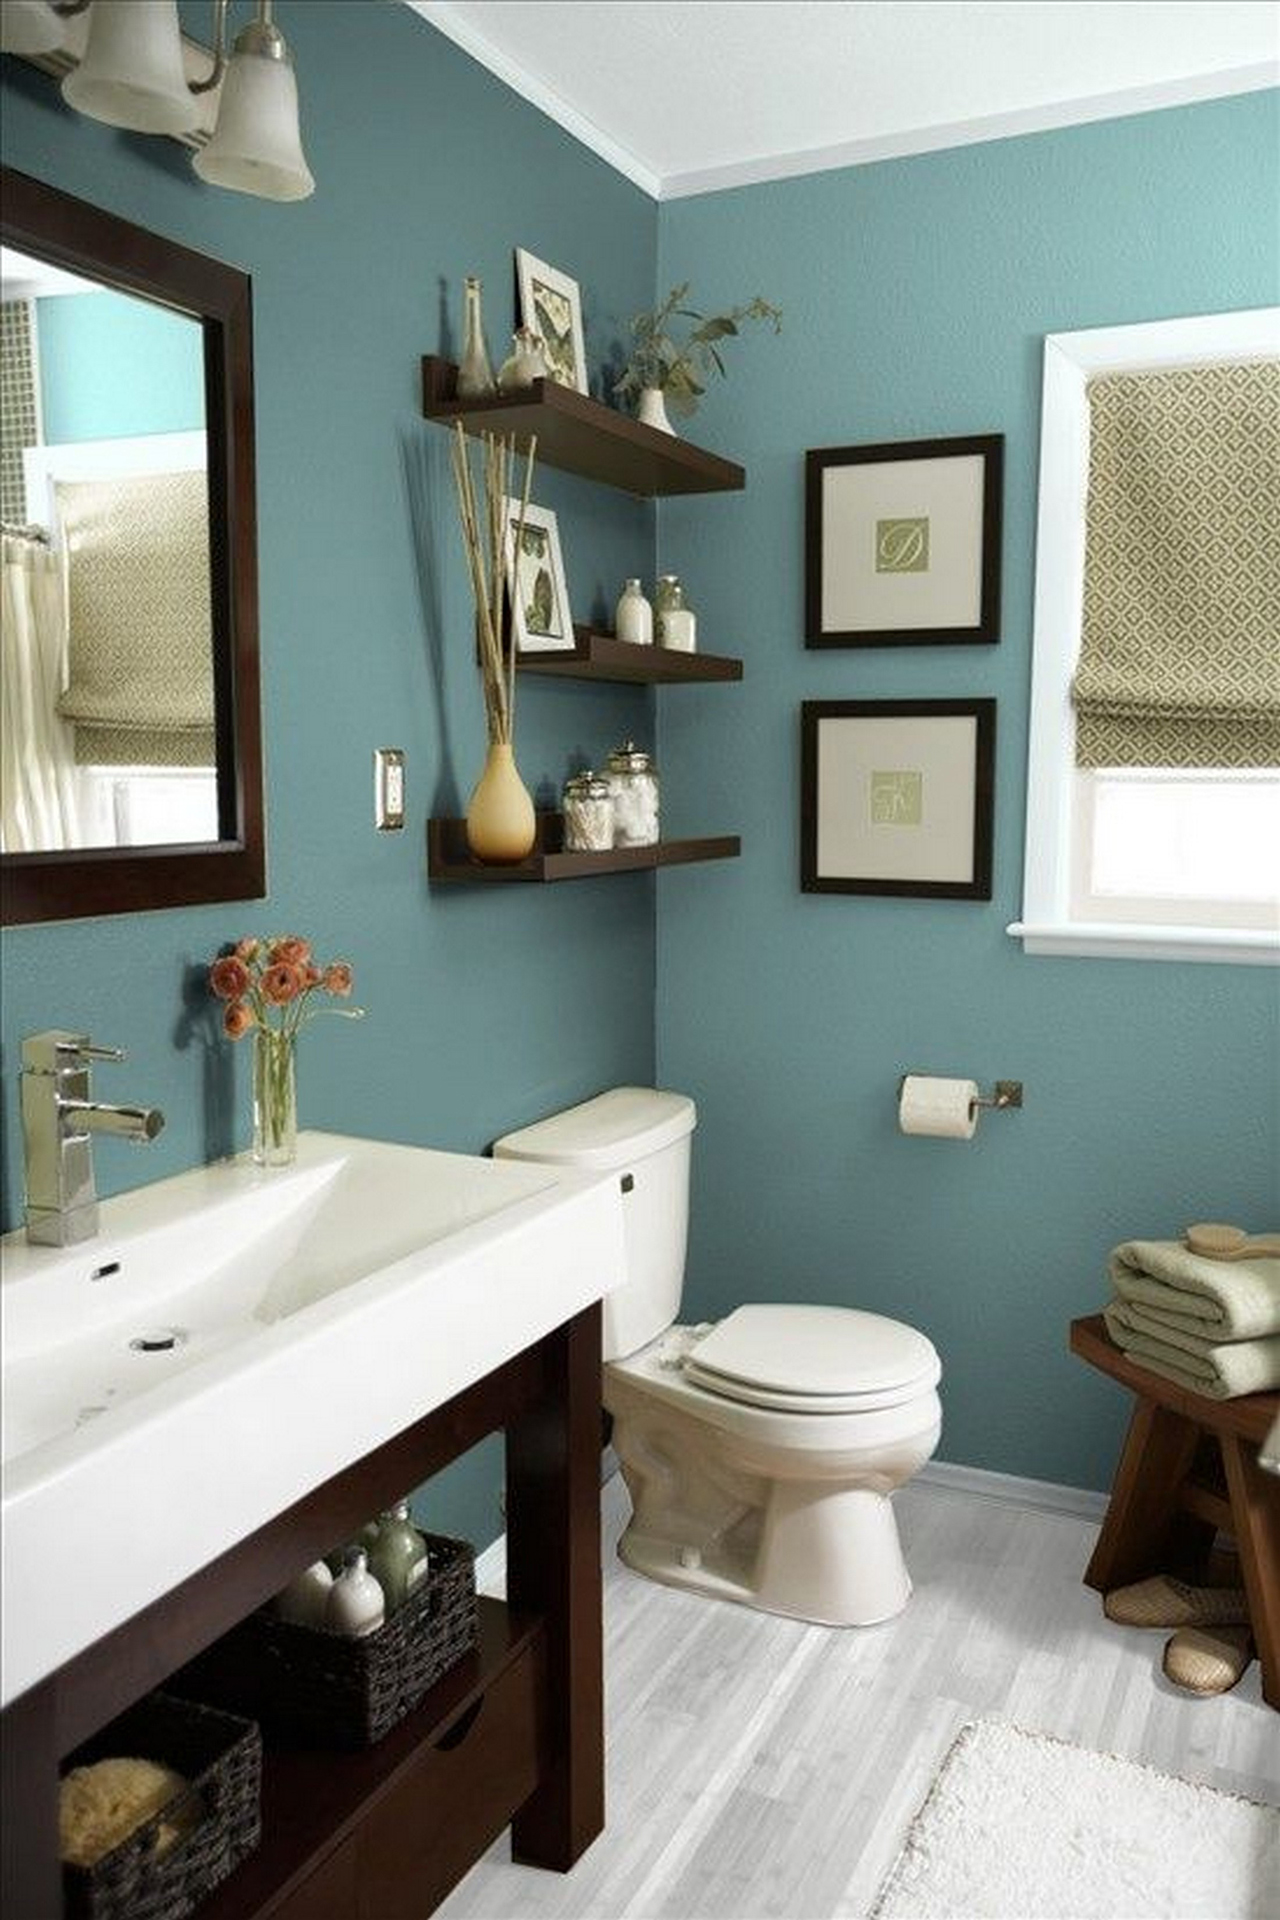 Home decorating ideas bathroom - 13 Chic And Calming Blue Design Theme